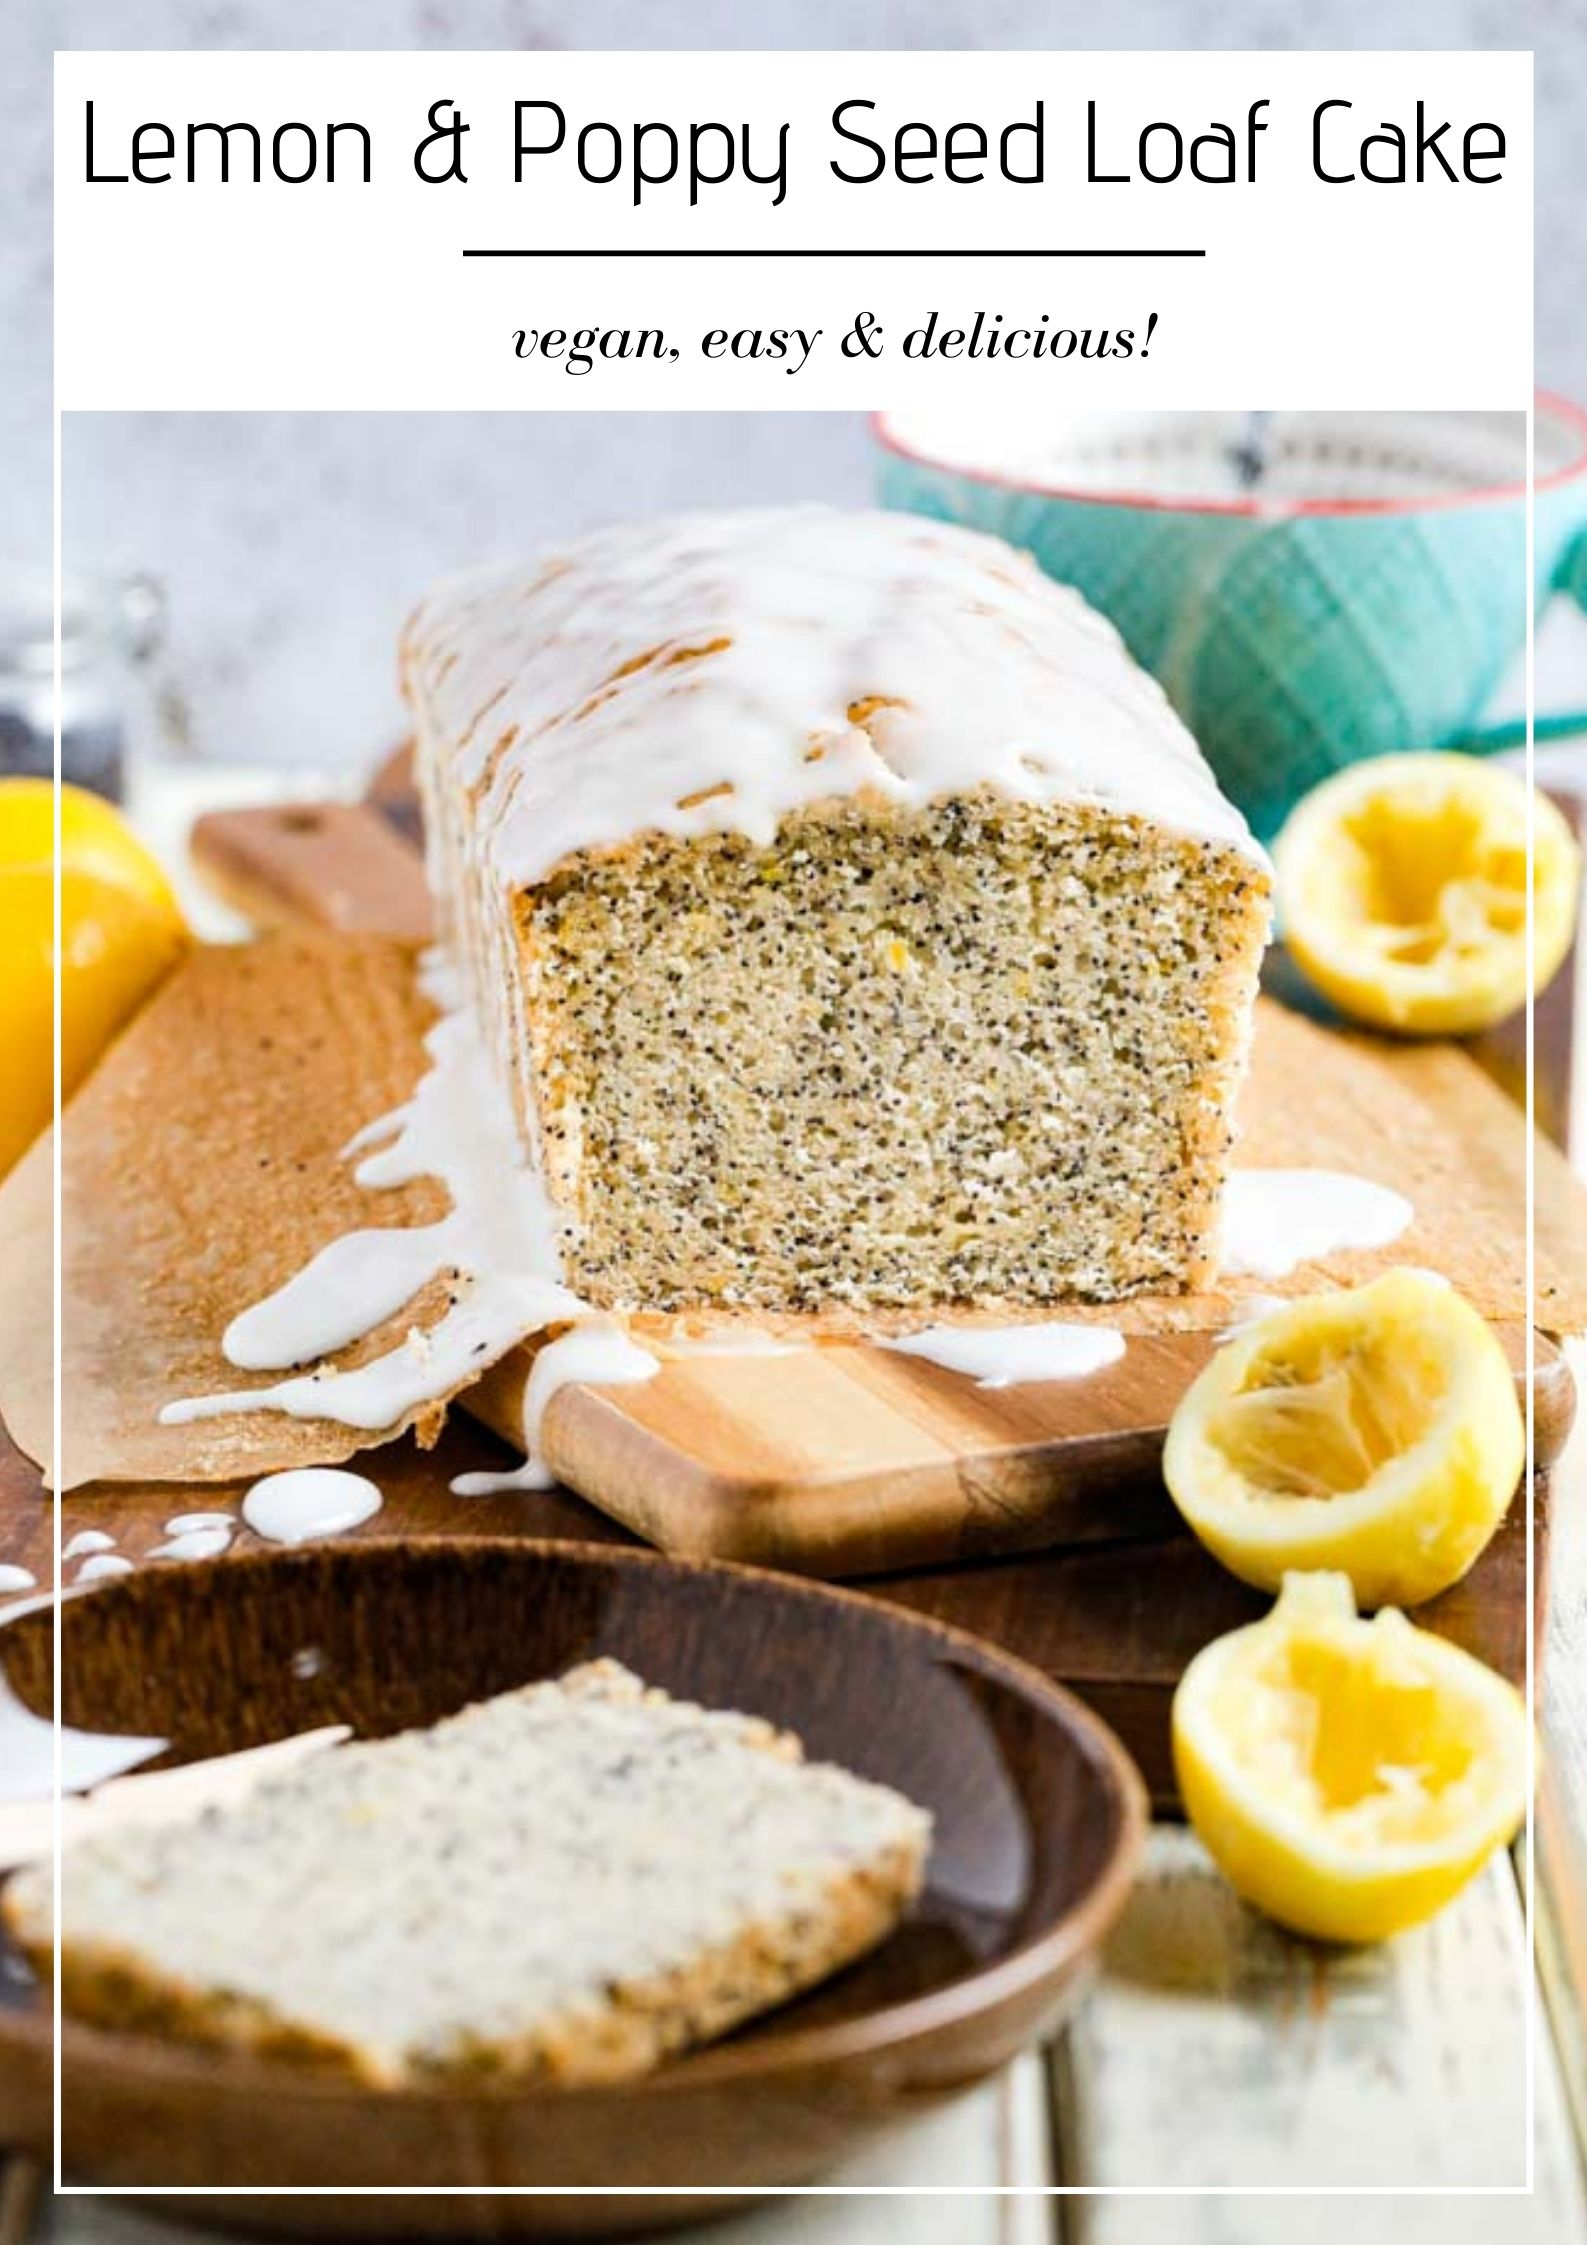 Zingy lemons and light poppy seeds combine perfectly in this delicate but moist vegan lemon poppy seed cake. Topped with a drizzle of sweet icing you'll be making this cake again and again! #lemoncake #lemonpoppyseedcake #lemonloaf #vegancake #dairyfree #eggfreecake #veganbaking #nondairymilk #veganmilk | Recipe on thecookandhim.com